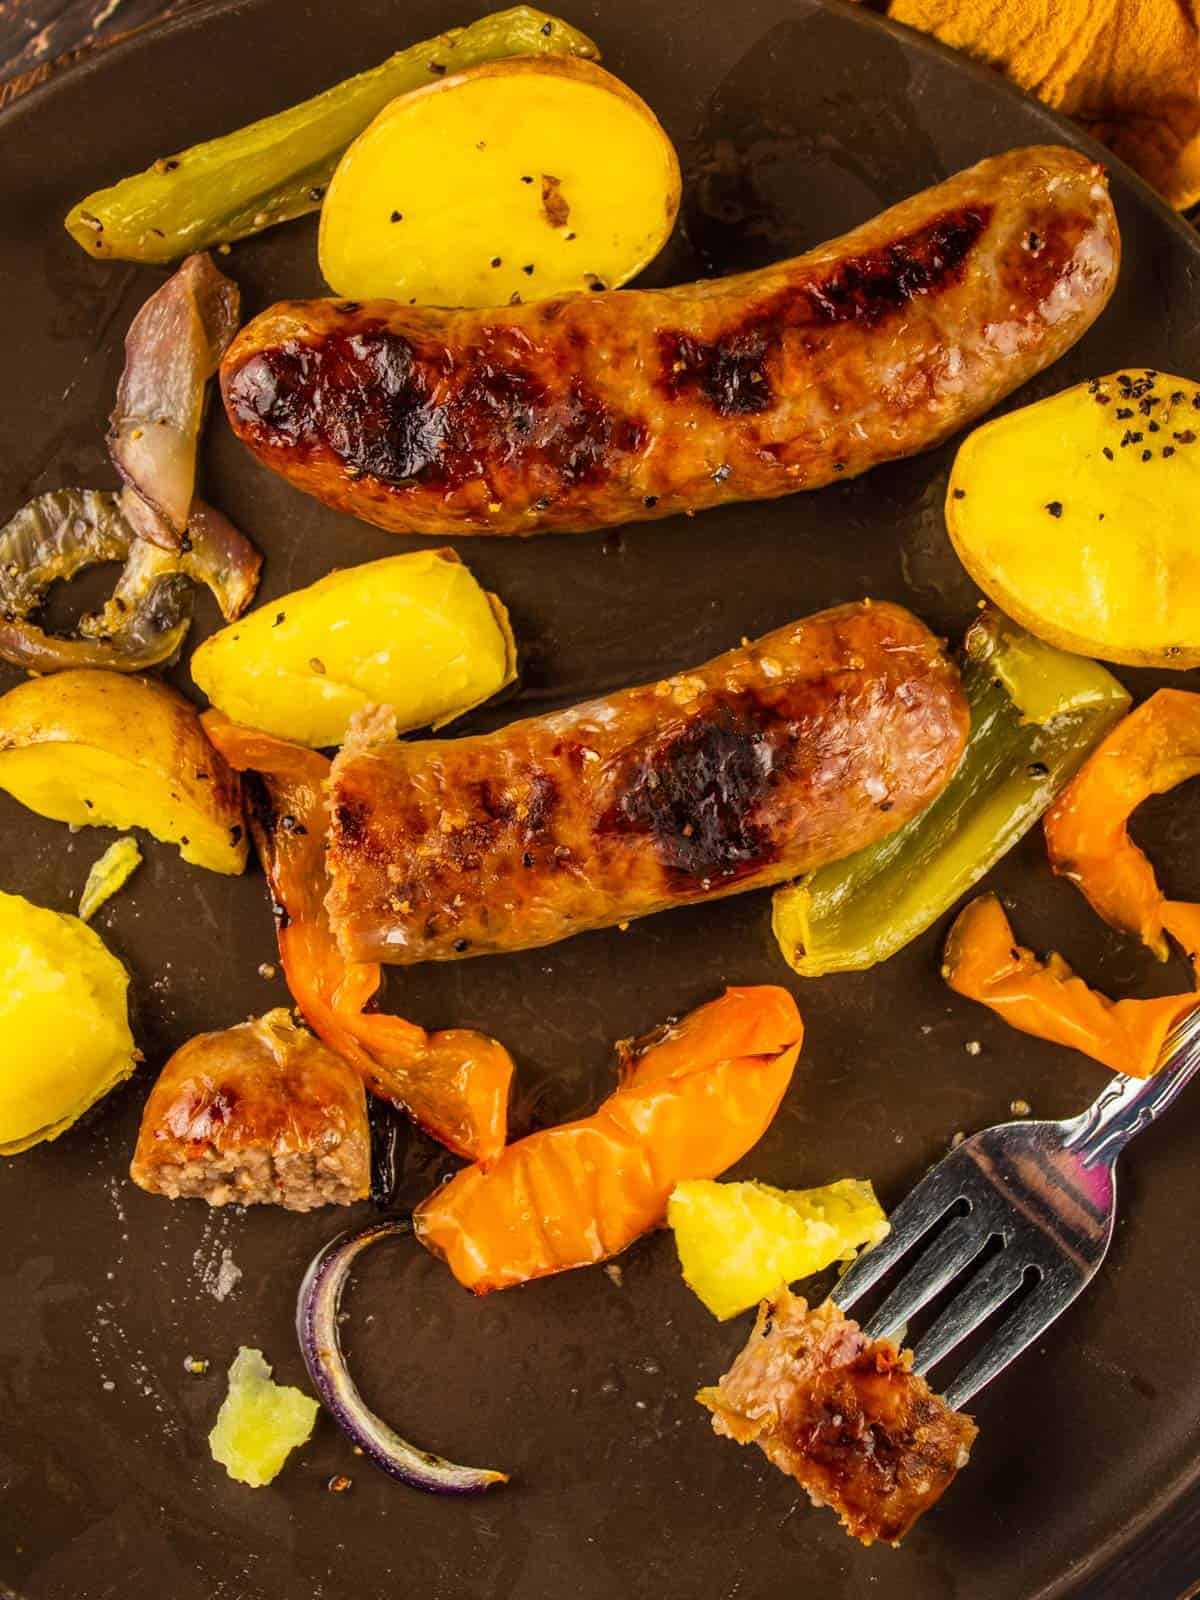 roasted sausages, potatoes and peppers on a brown plate with a fork